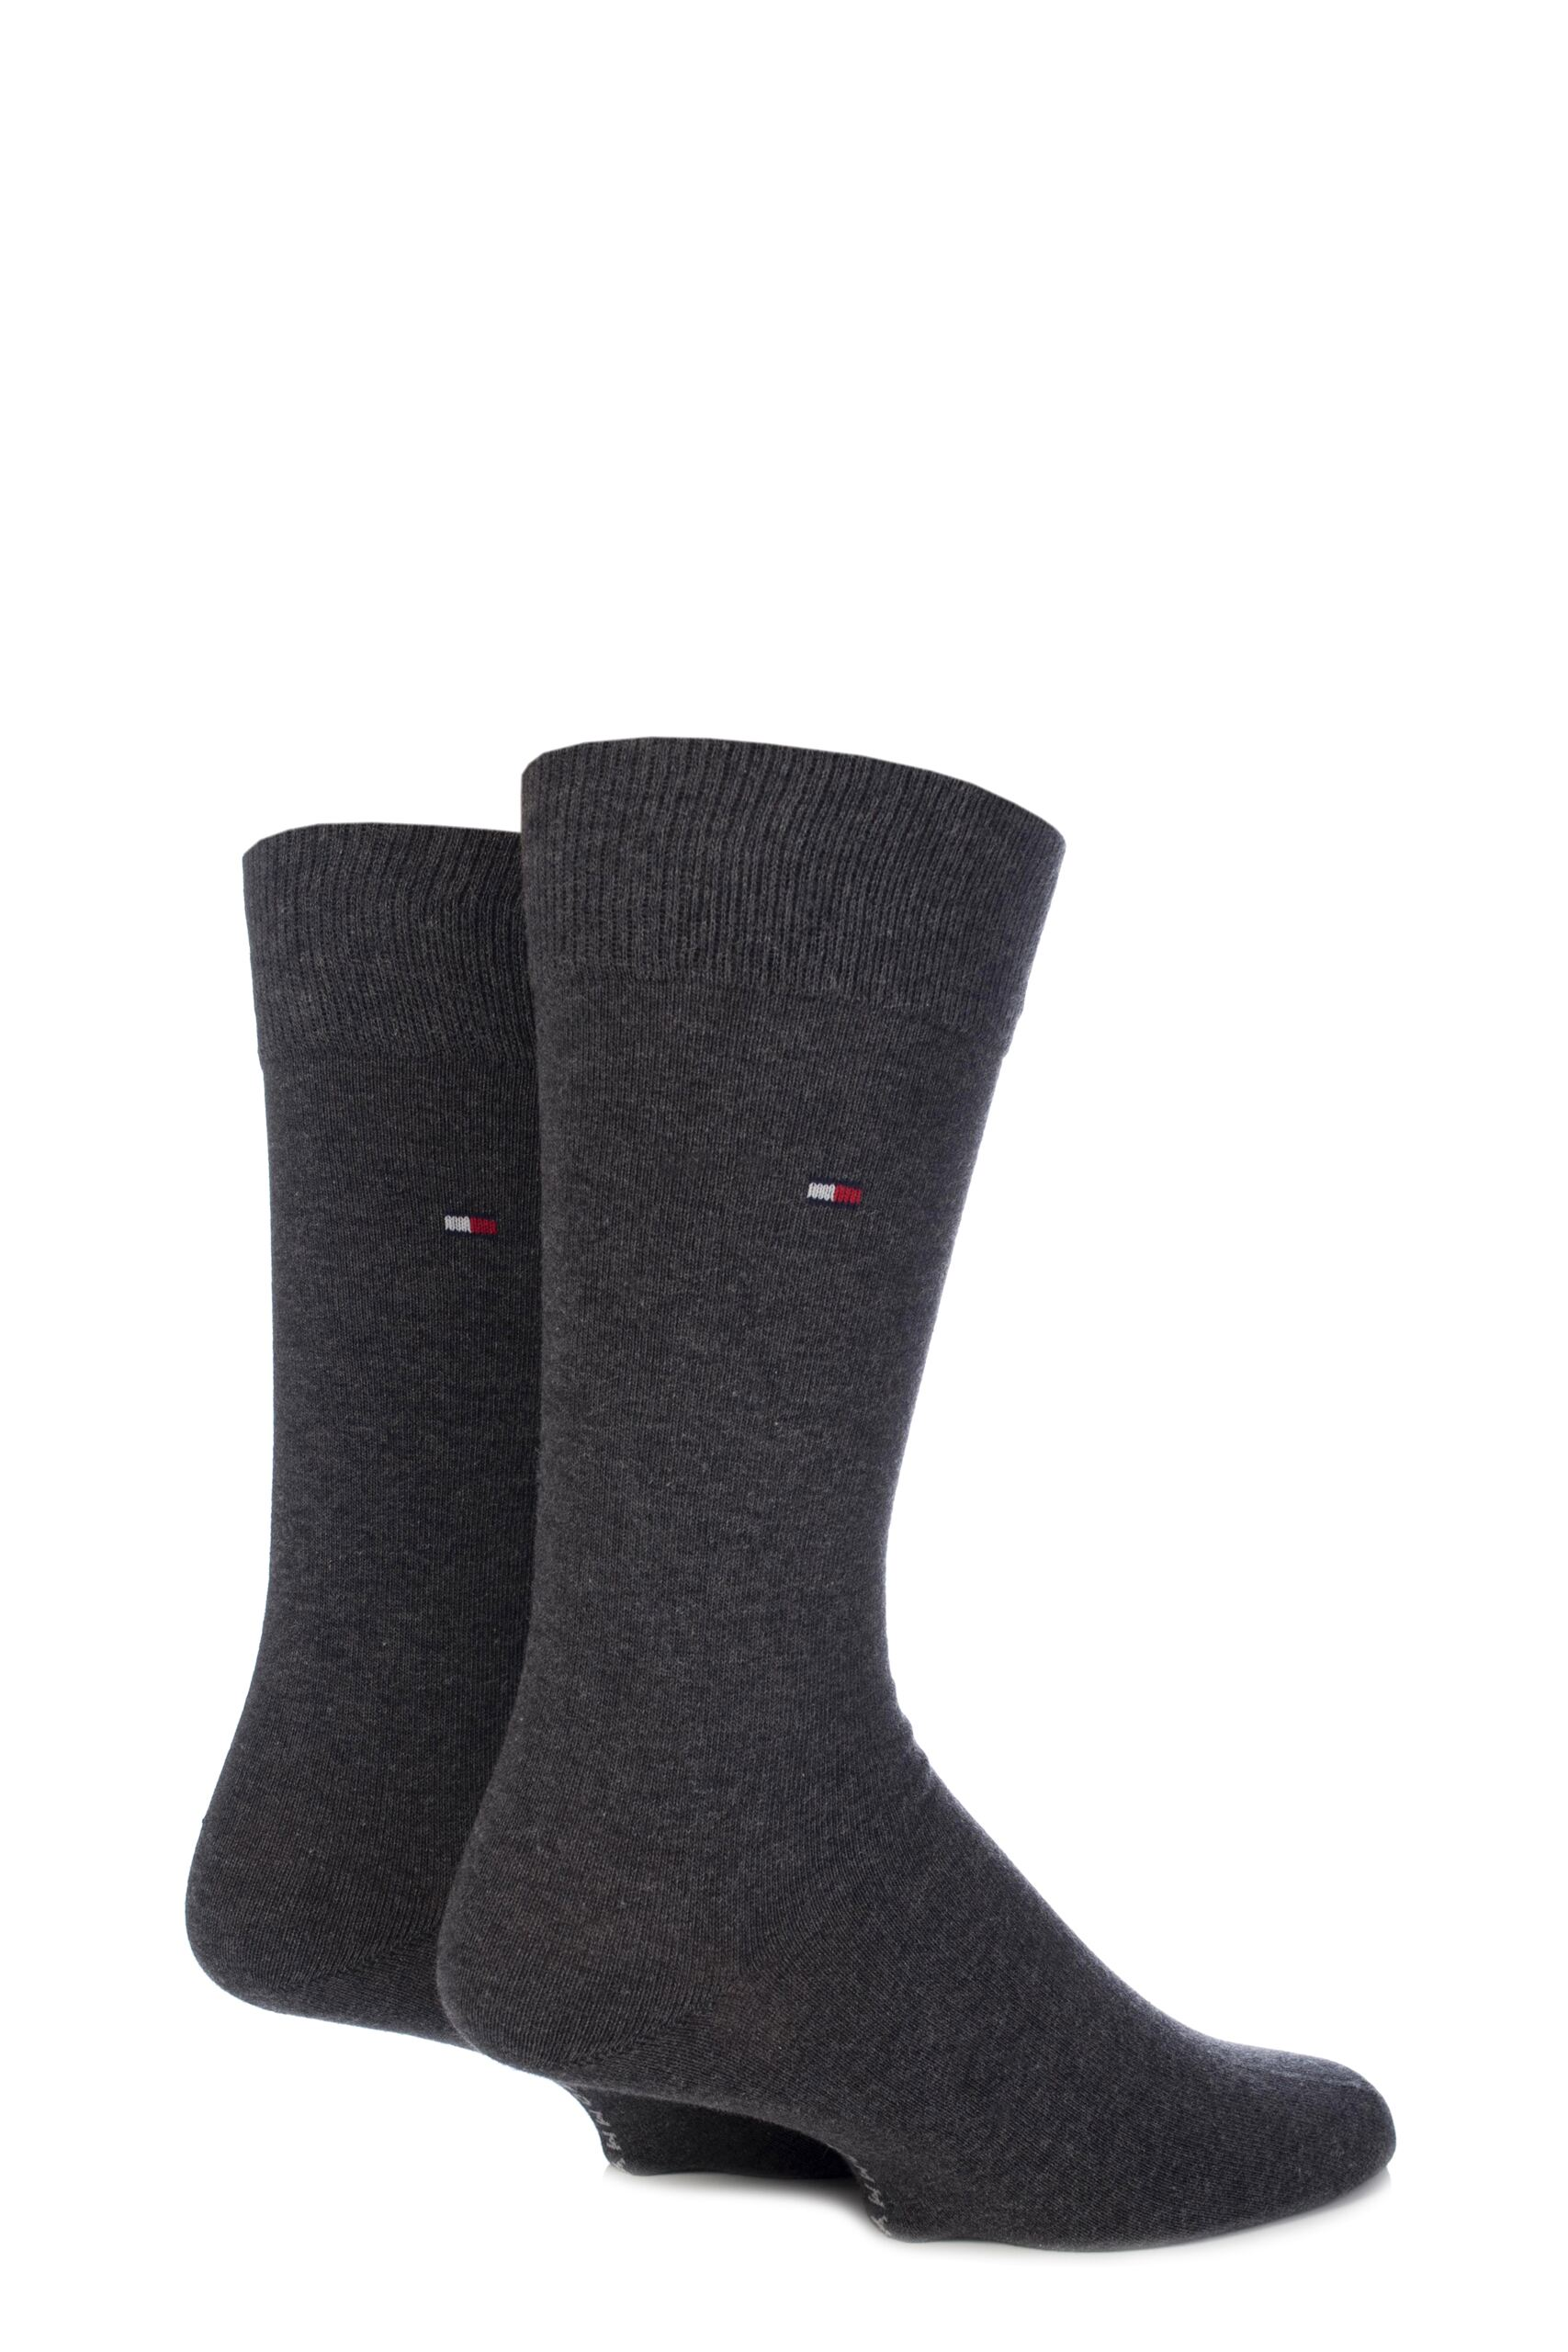 Image of 2 Pair Anthracite Melange Classic Plain Cotton Socks Men's 6-8 Mens - Tommy Hilfiger